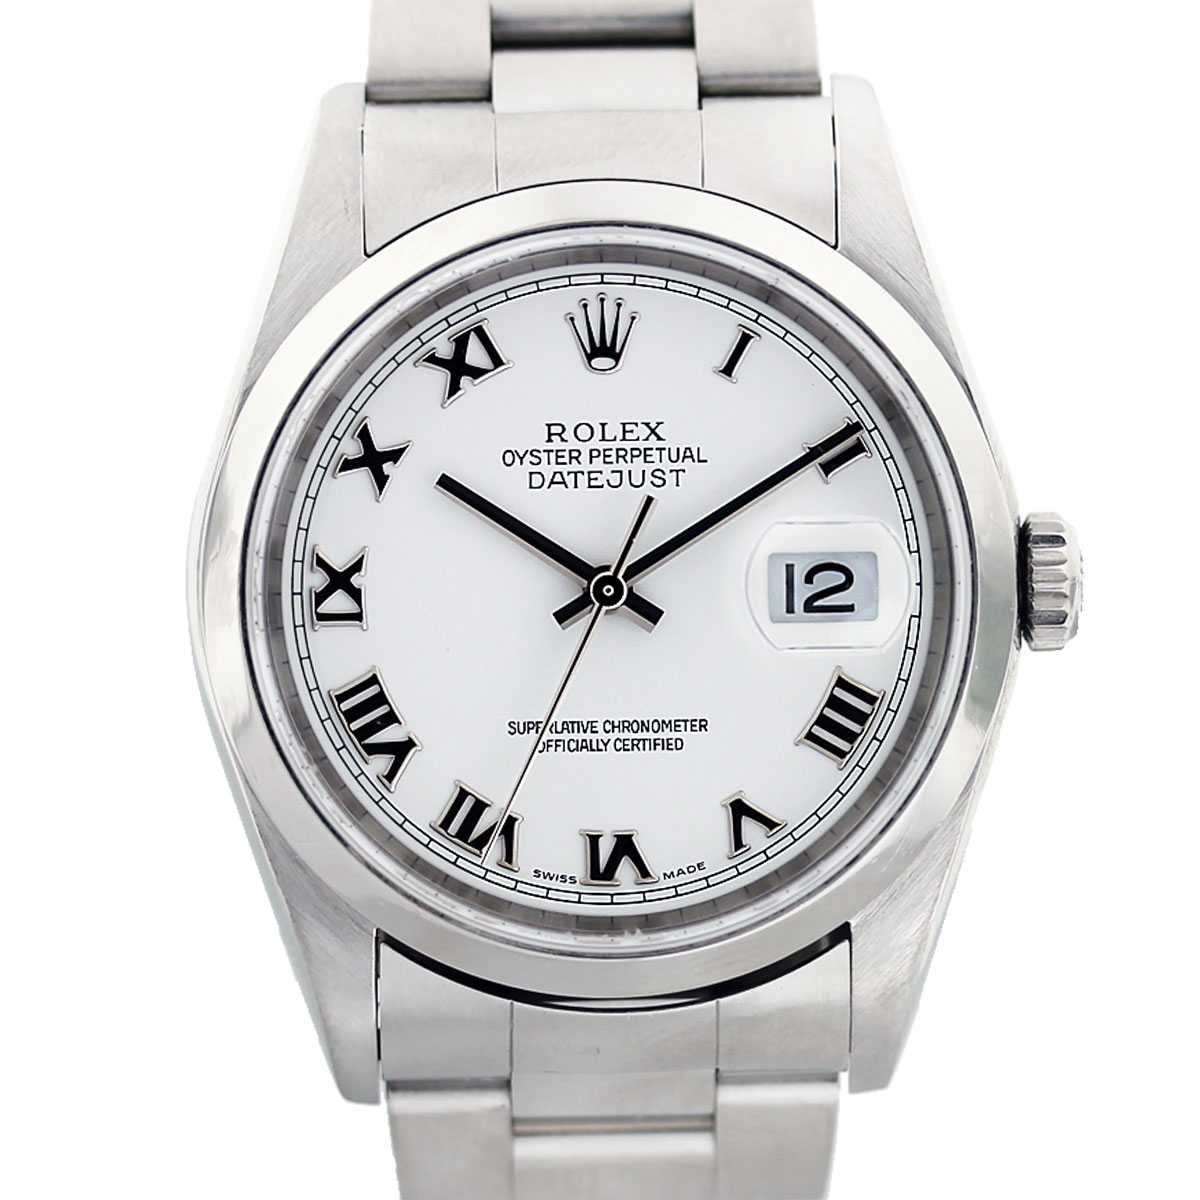 Rolex Datejust 16200 White Roman Numeral Dial Stainless